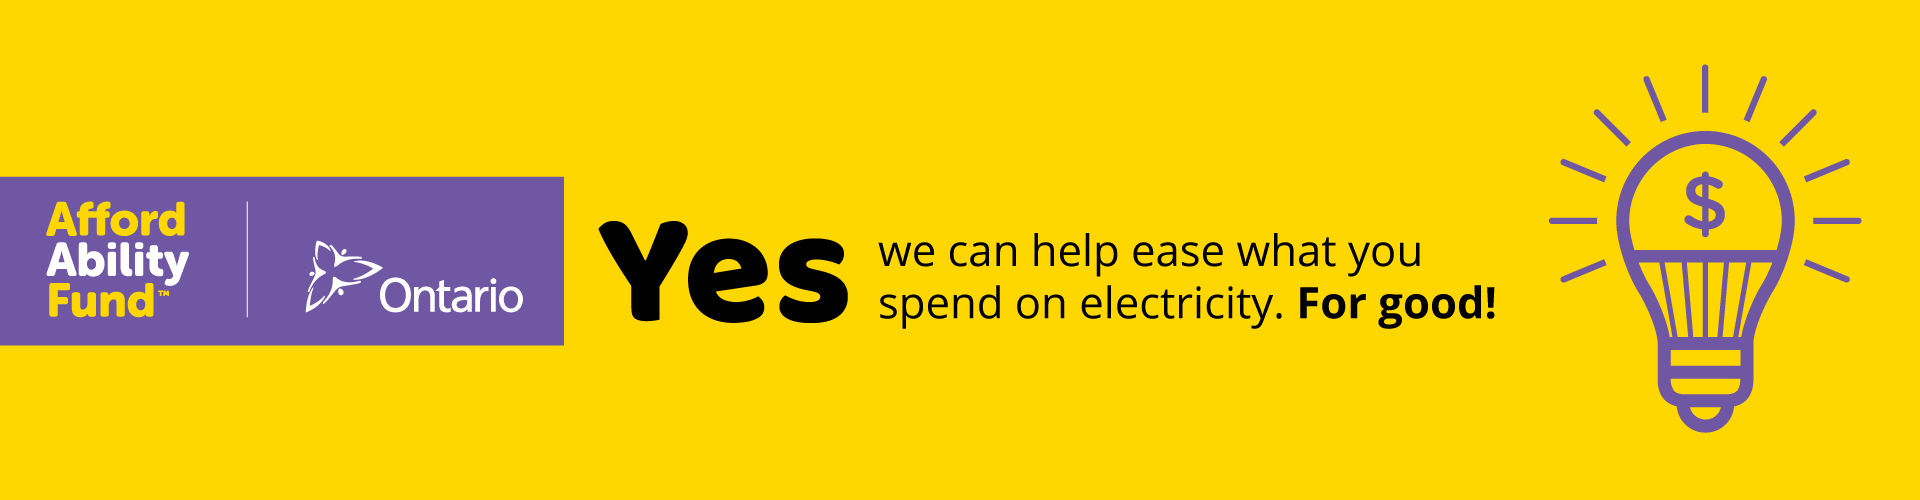 Affordability Fund Header Yes We Can Help Ease What You Spend On Electricity For